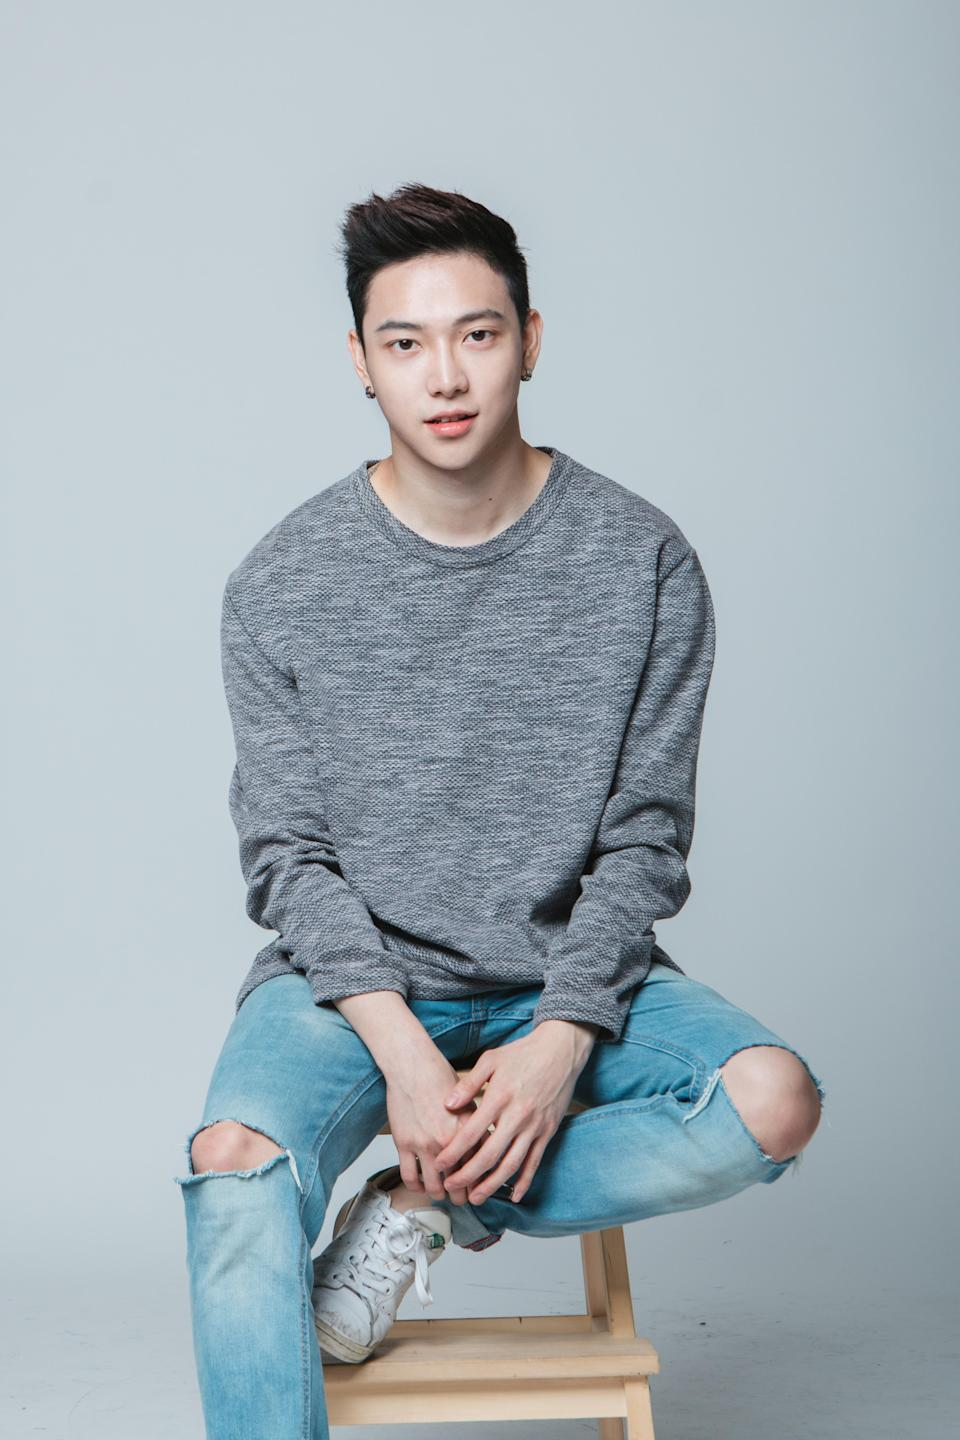 Alfred Sng scored a contract with Alpha Entertainment and was almost ready to train to debut in a K-pop boy group, until it was time for him to enlist in National Service.